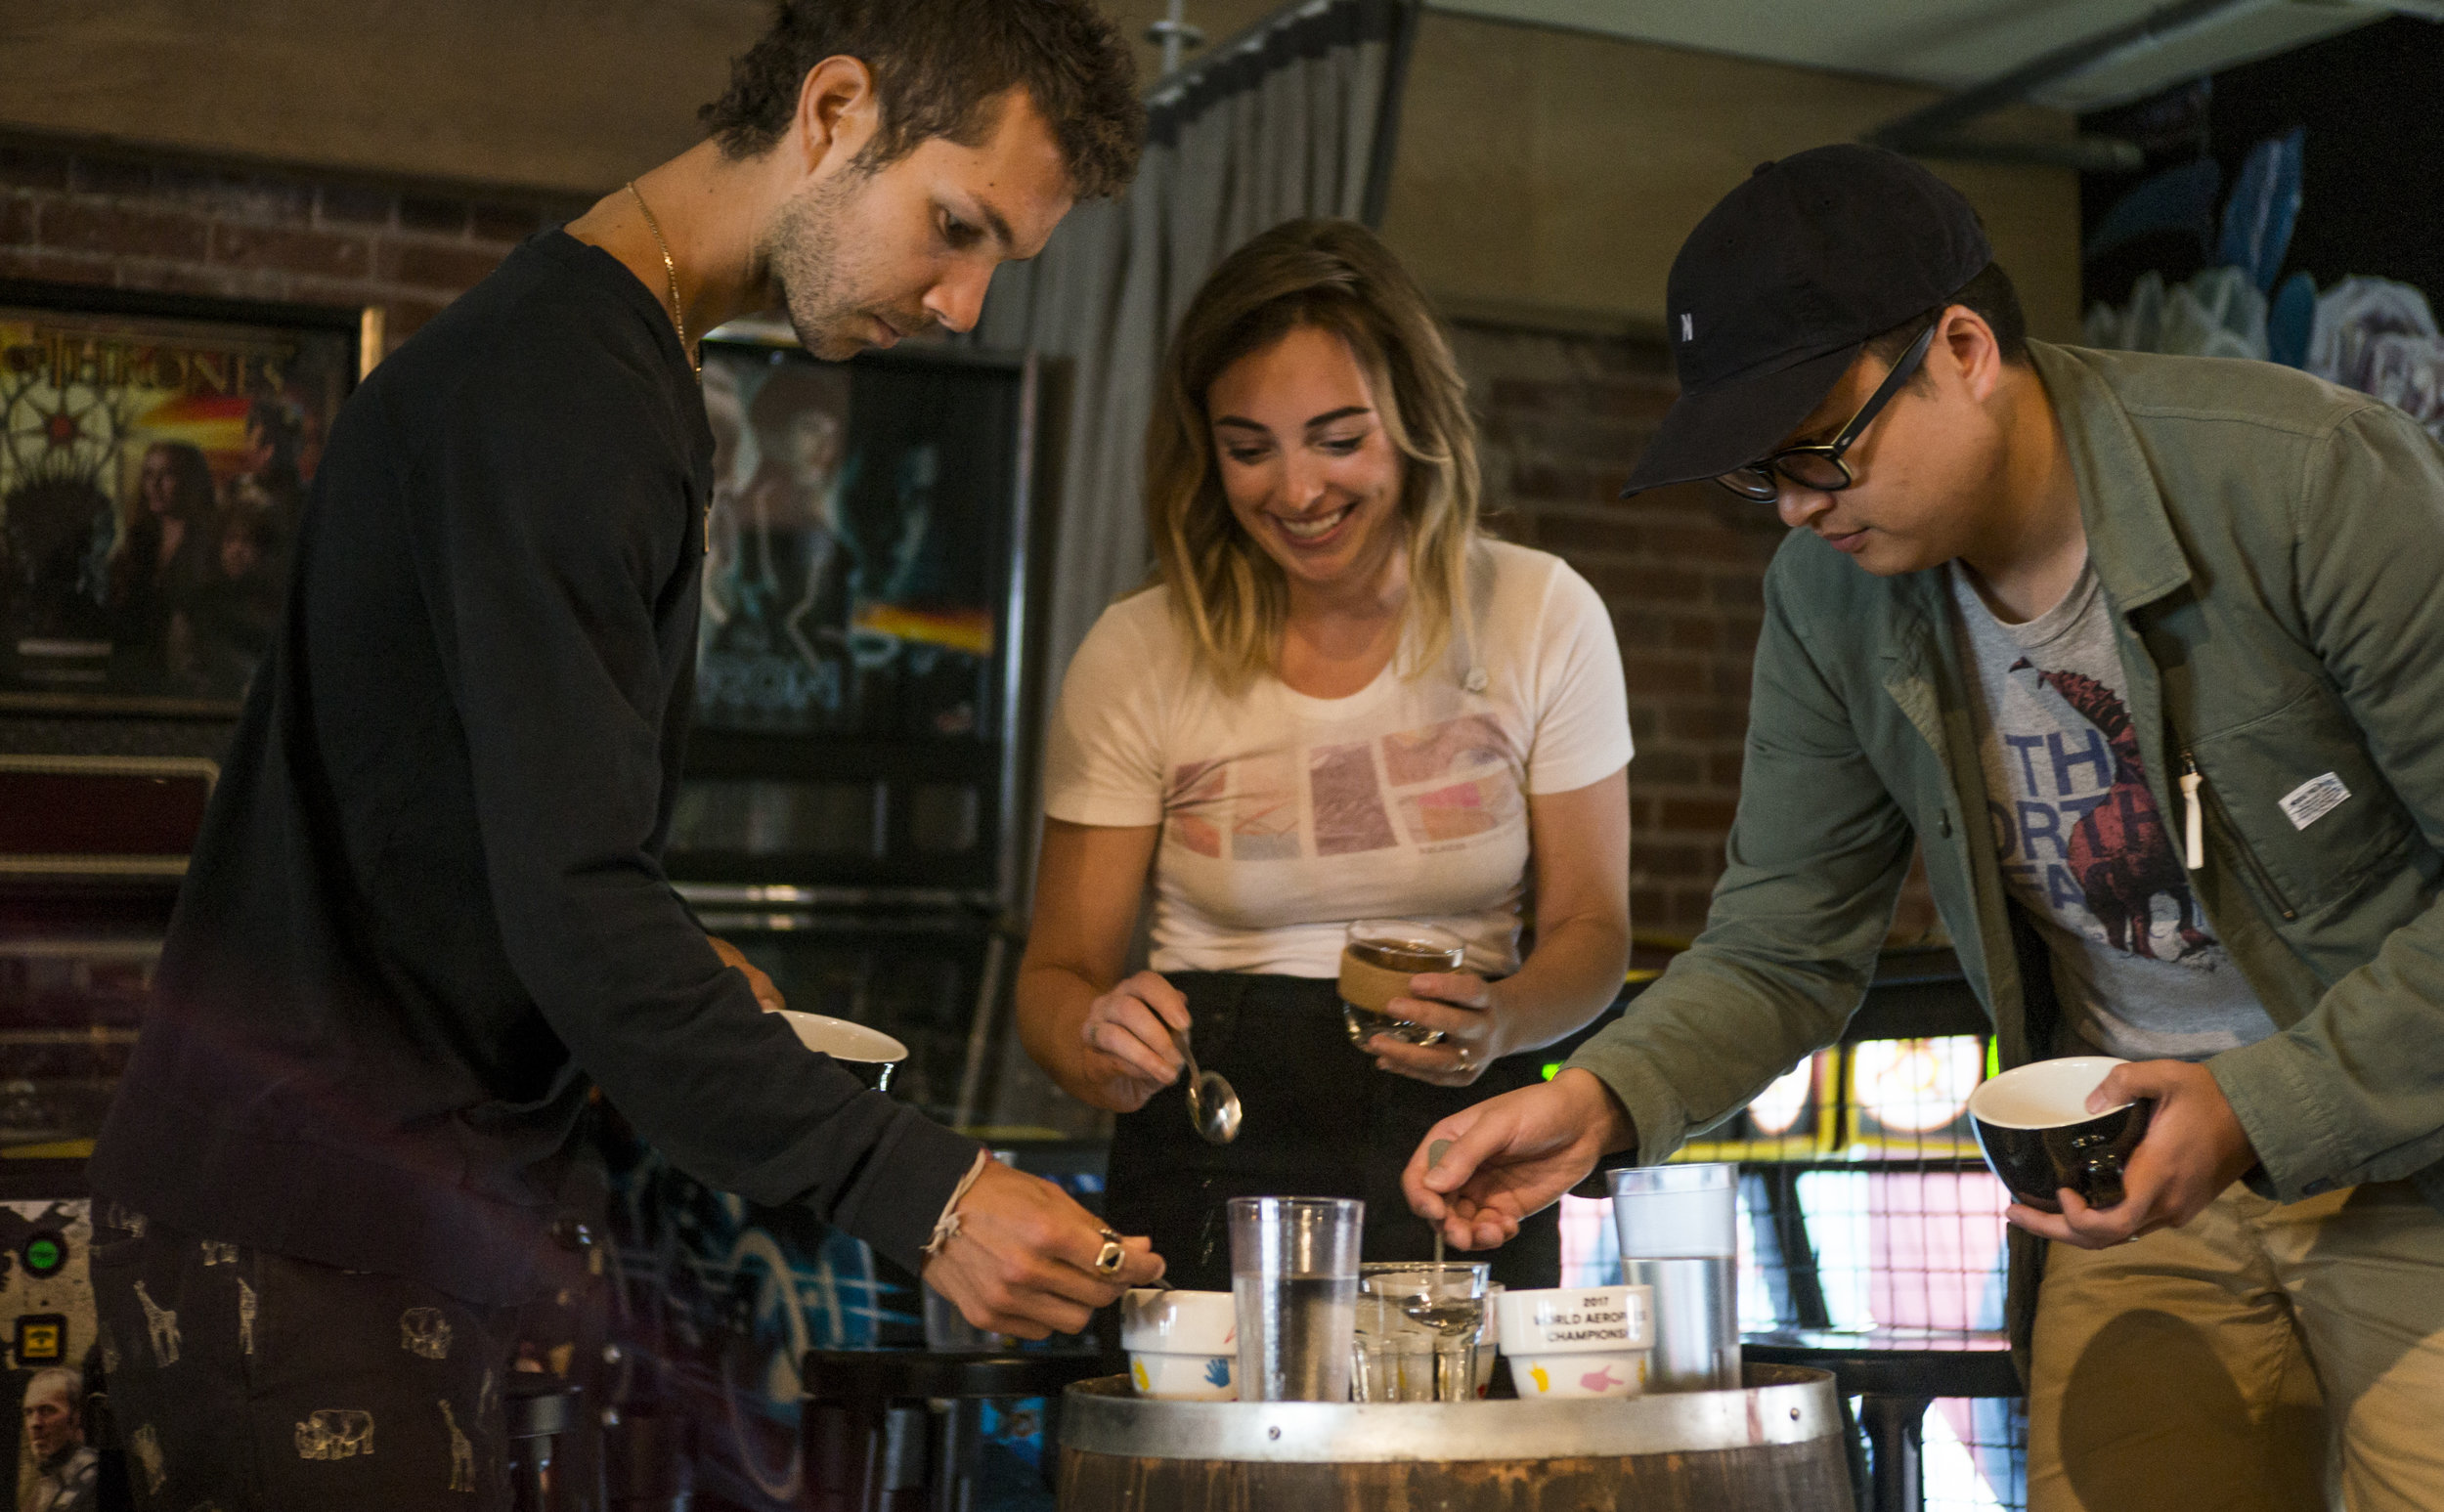 aeropress_tournament.1033.jpg